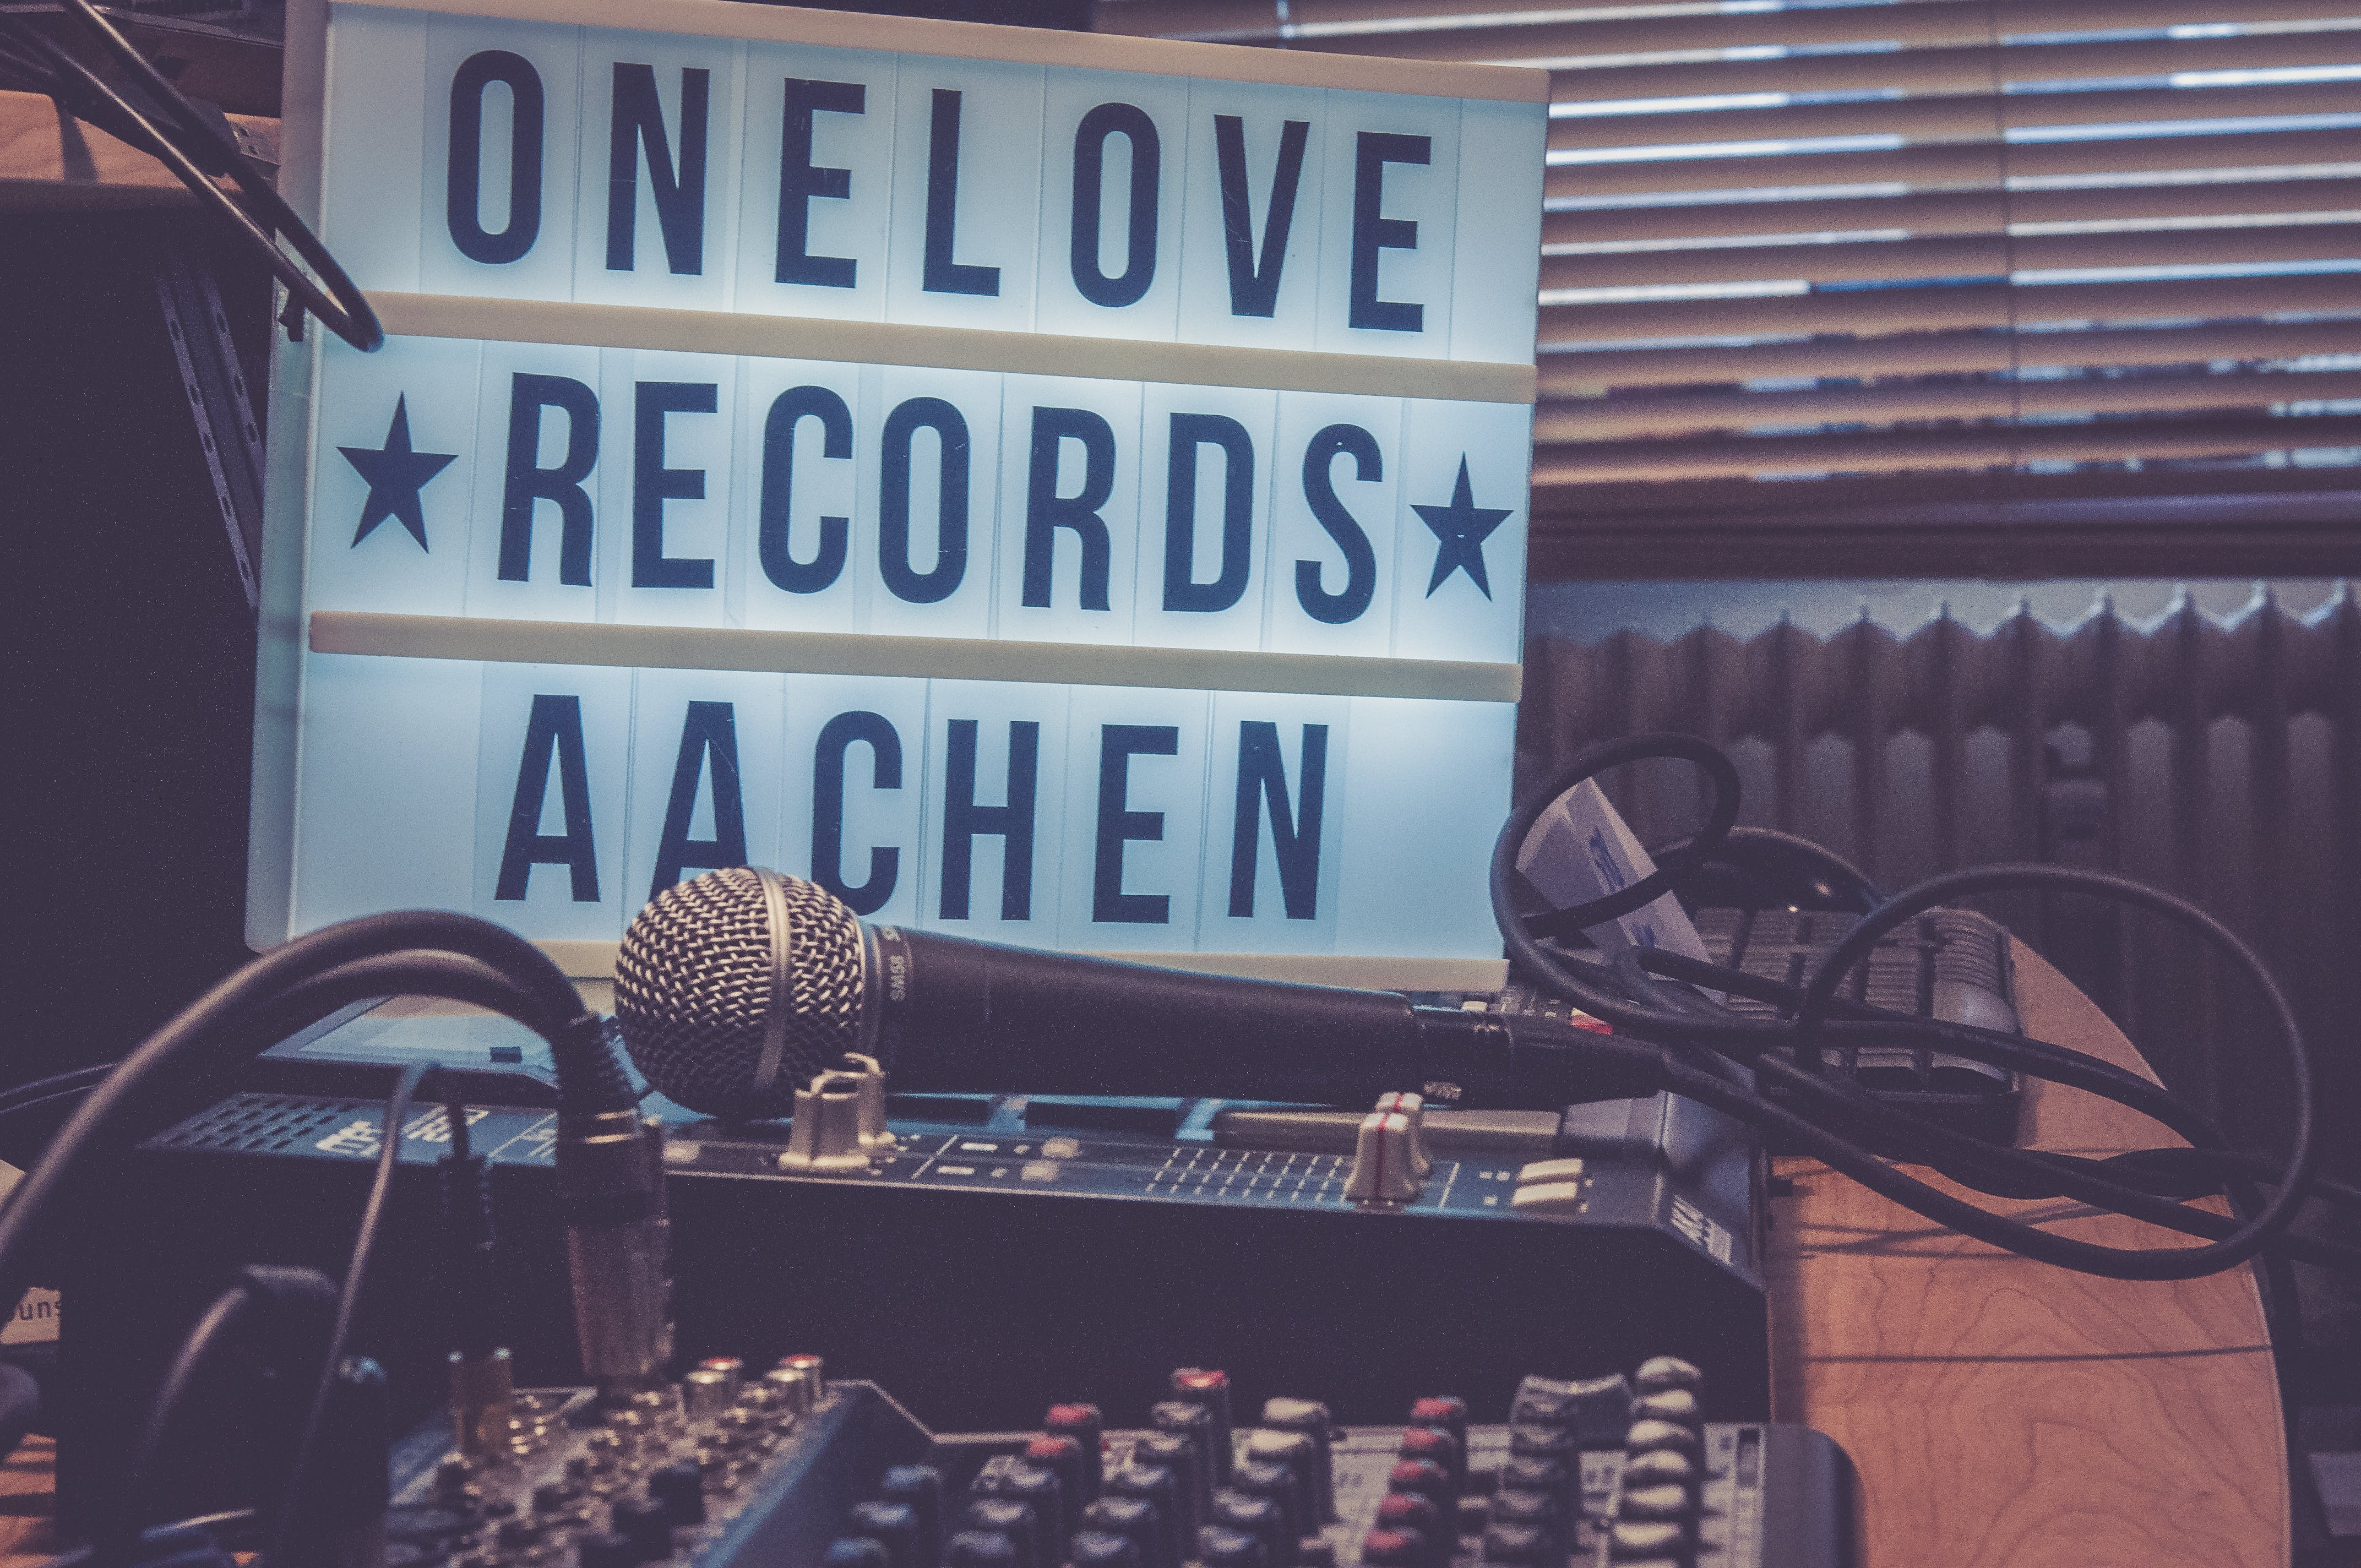 One Love Records Aachen